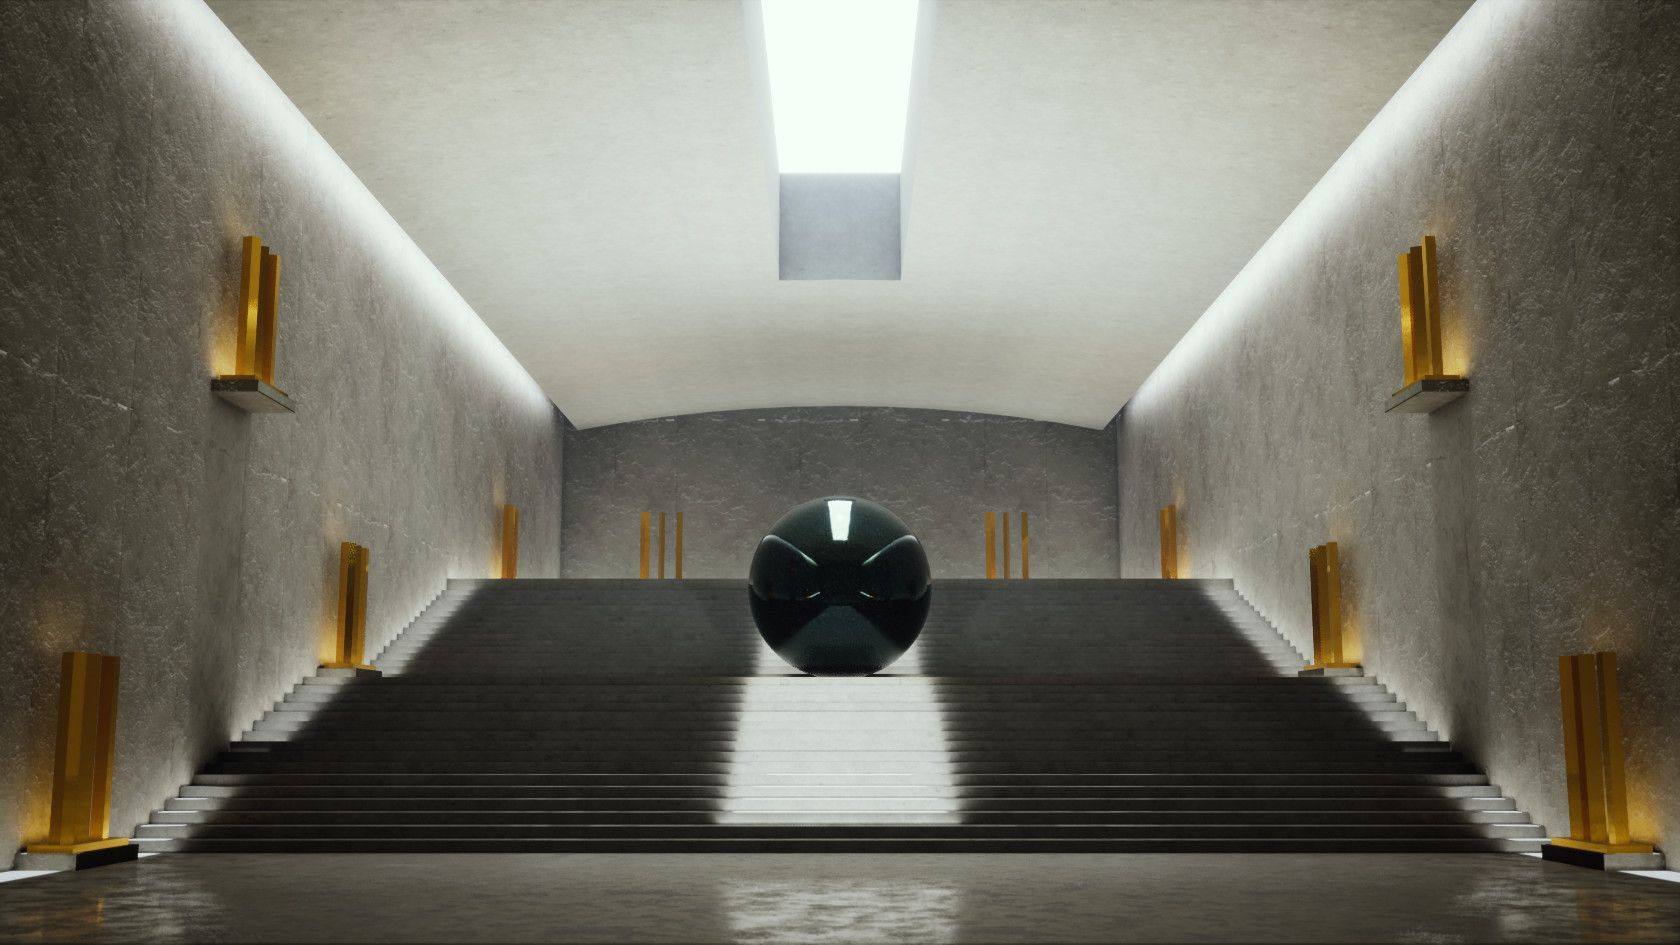 Chichu Art Museum by Tadao Ando Art museum in the Earth (Snehal Vyawahare) Sheet2